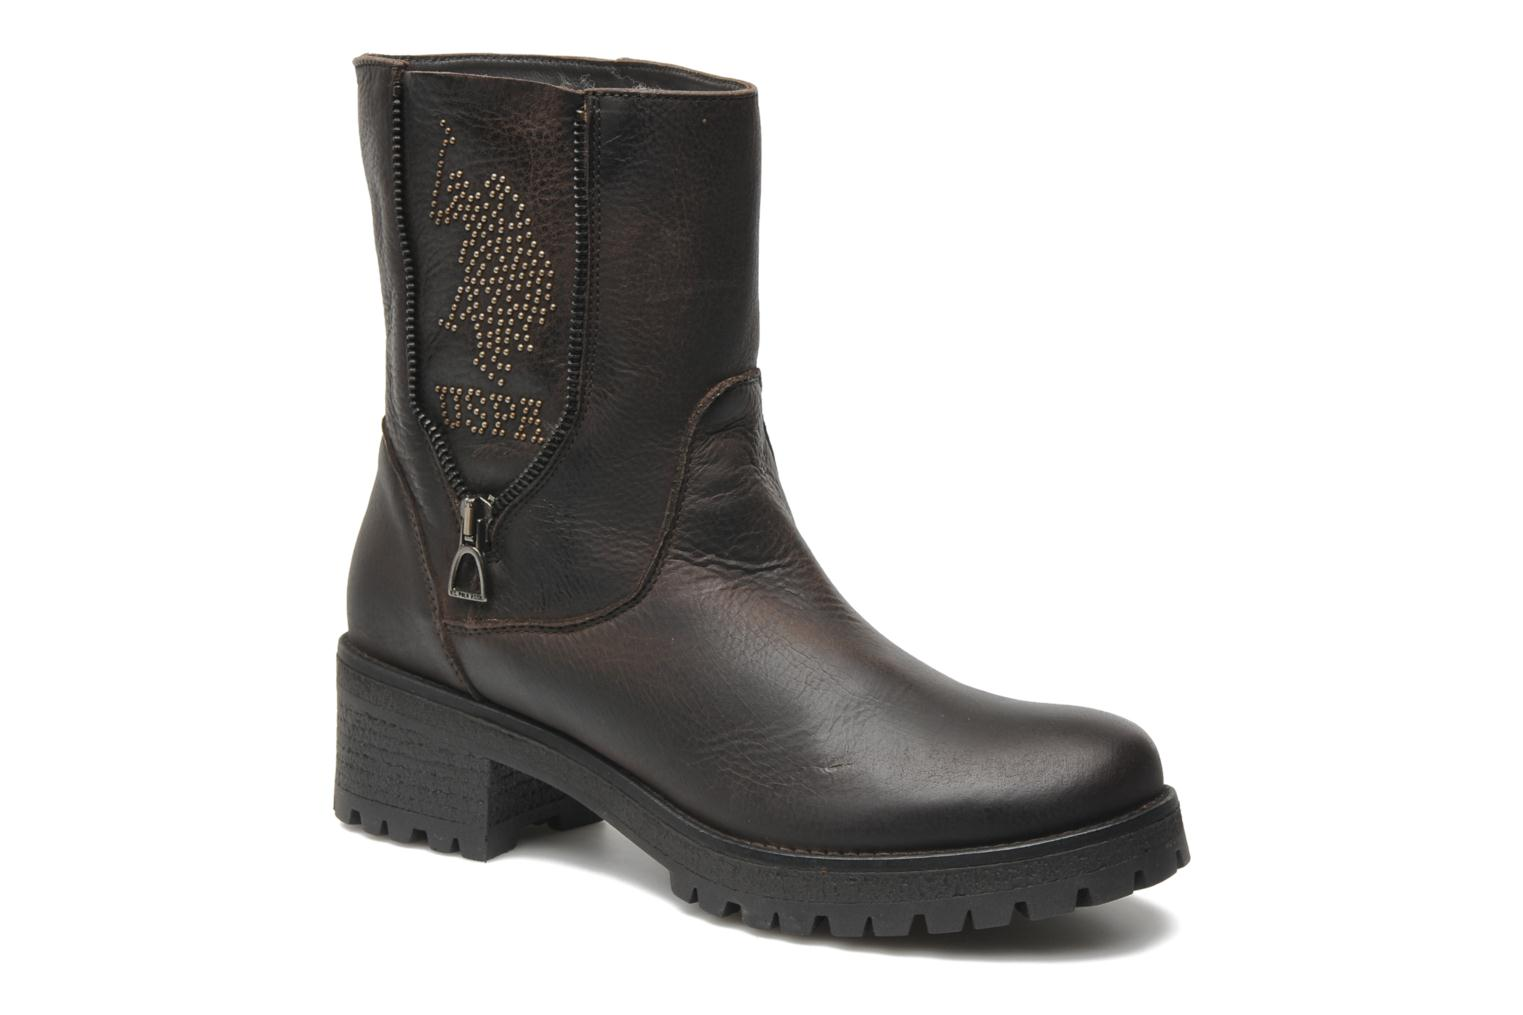 Bottines et boots U.S Polo Assn. Federica Leather Marron vue détail/paire